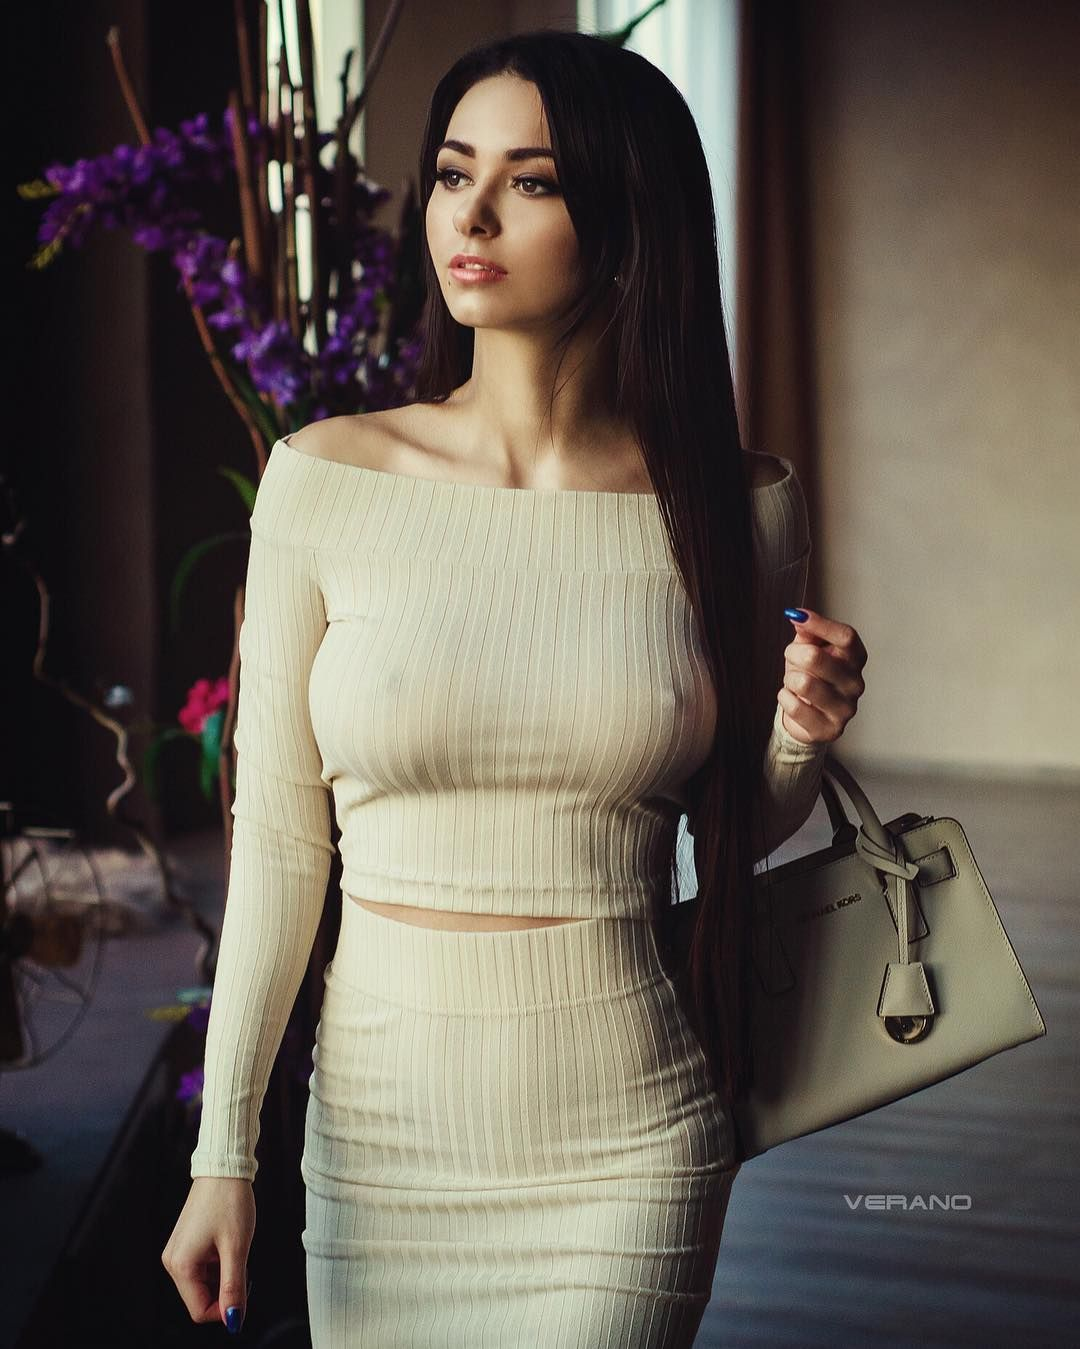 Helga Lovekaty nudes (23 pics), pics Porno, YouTube, swimsuit 2020